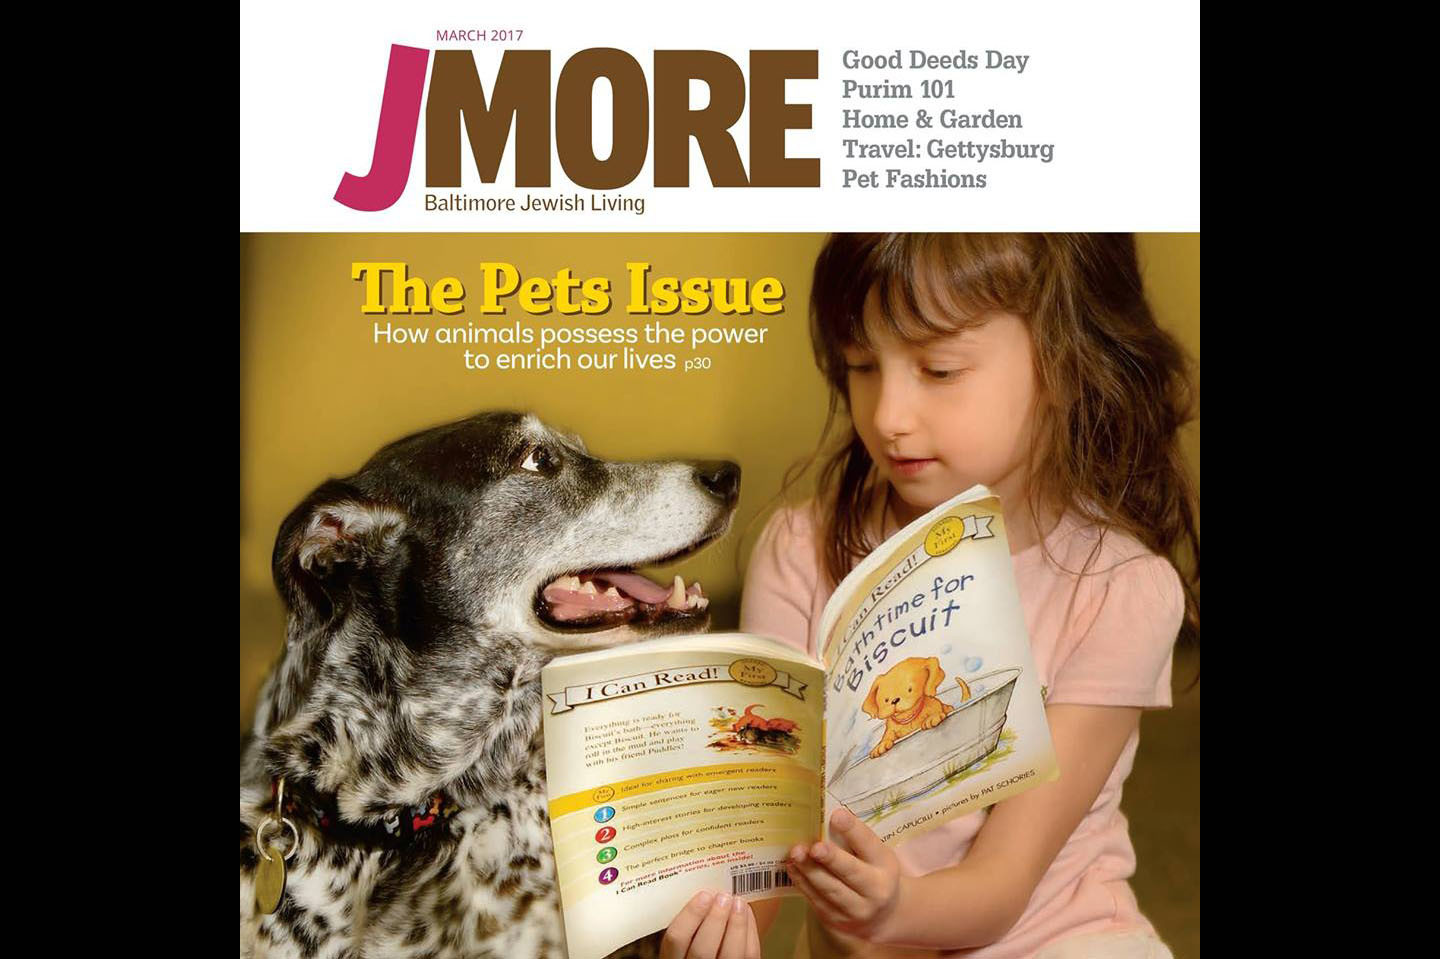 Jmore covers: March 2017